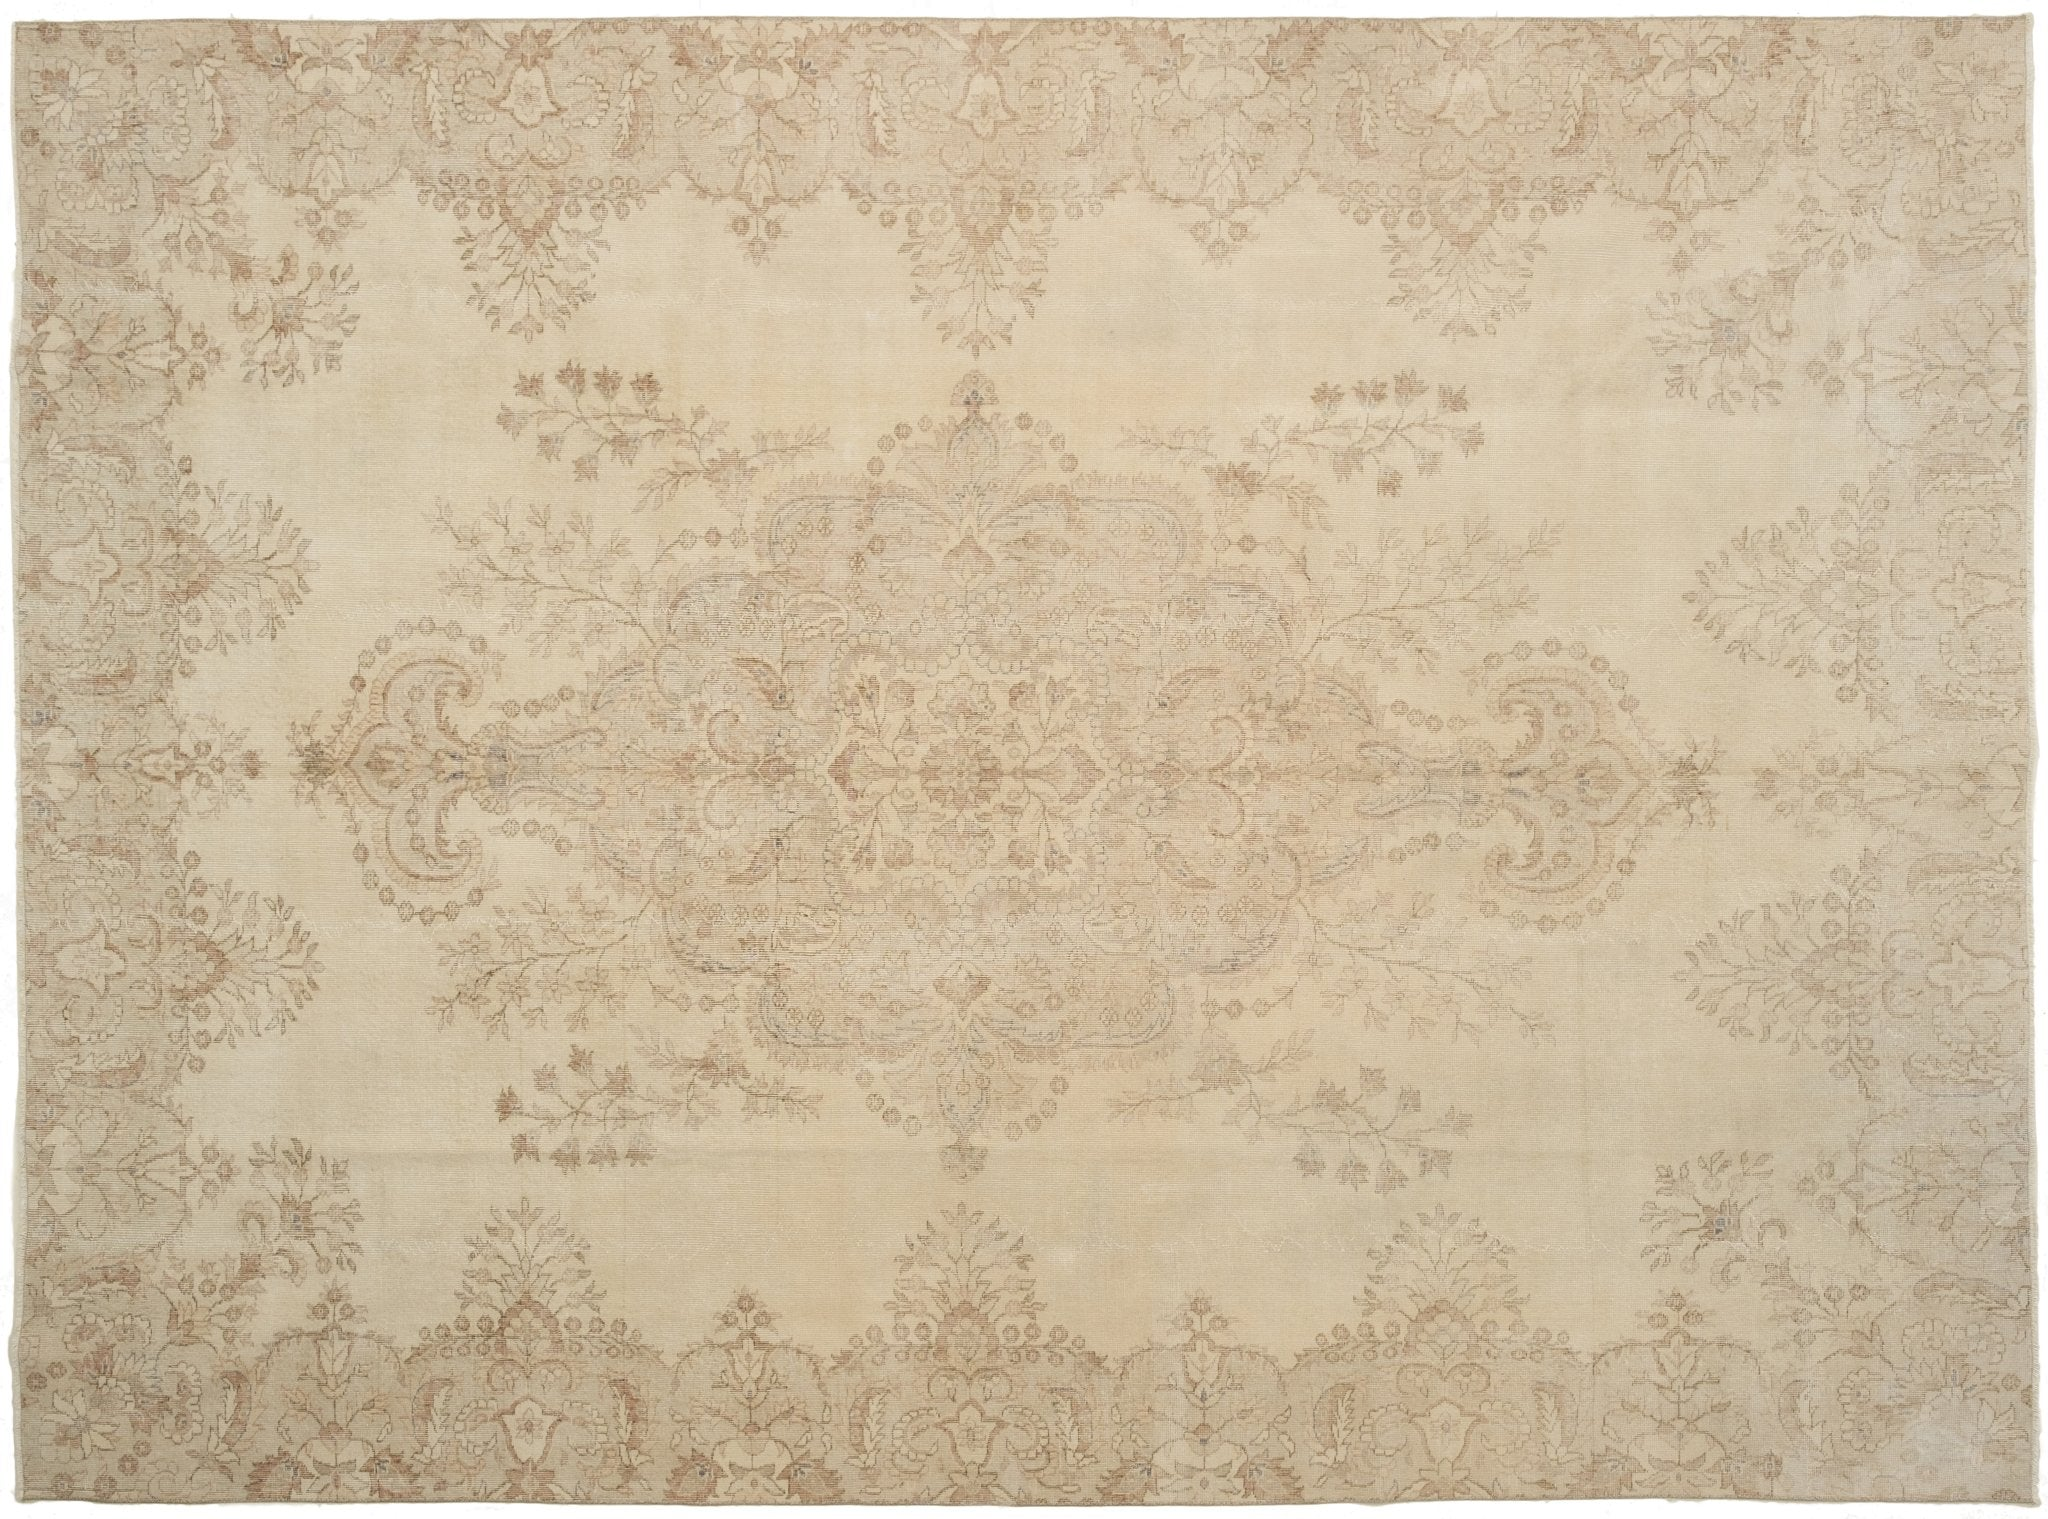 Handknotted Rug Bagdat